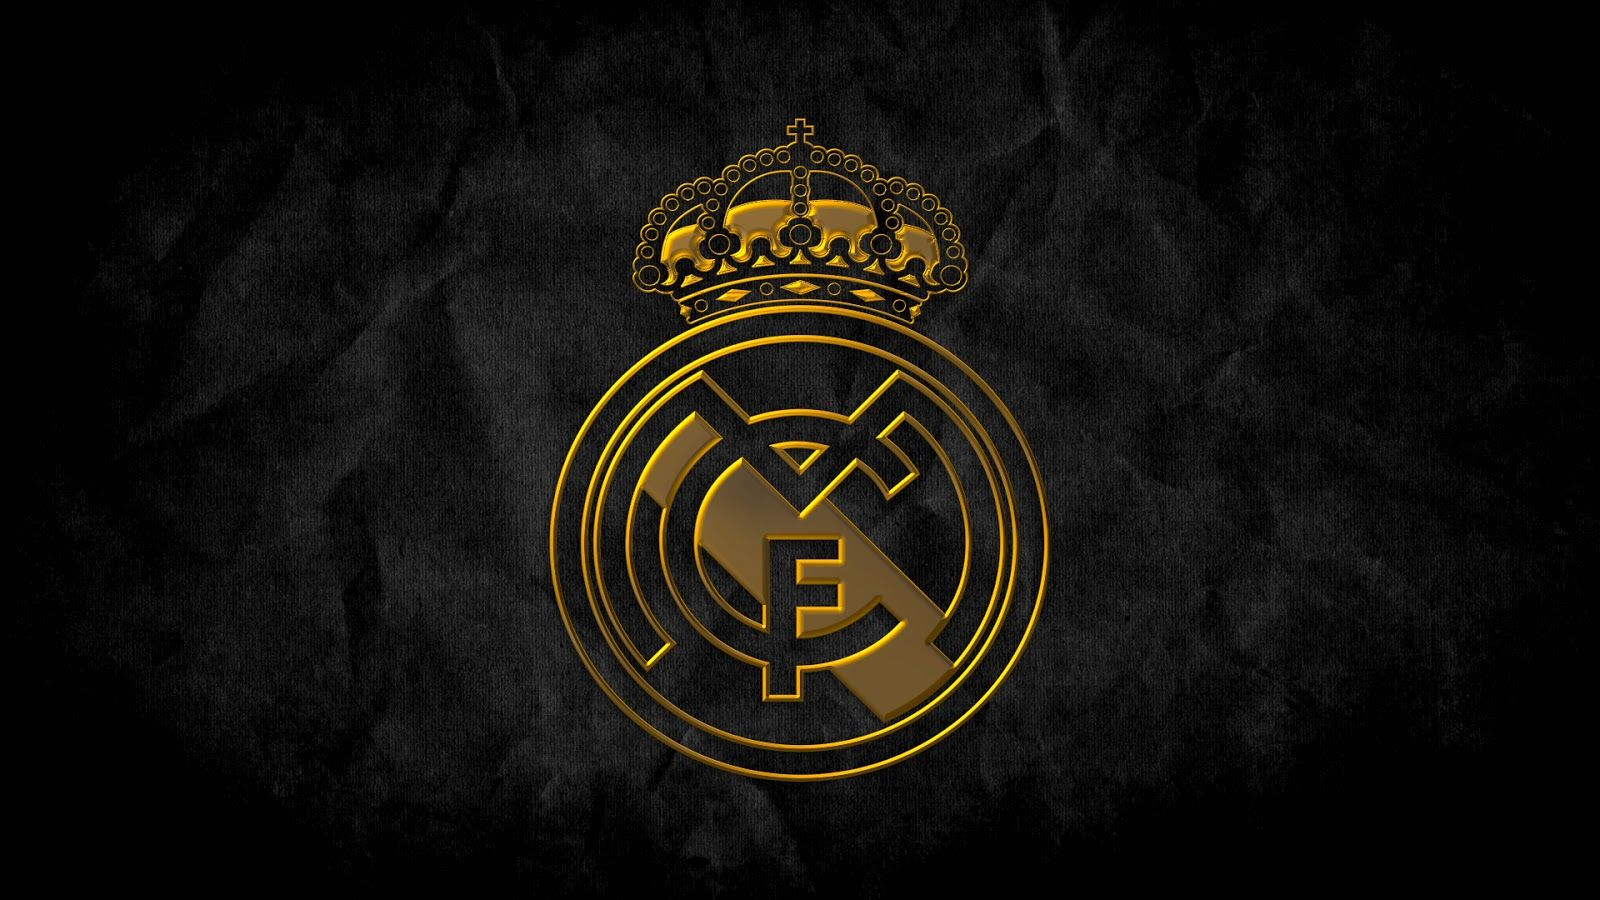 Black Wallpaper High Resolution Soccer Free Wallpaper Download 1866 1244 Real Madrid Hd Wa Real Madrid Logo Wallpapers Real Madrid Wallpapers Madrid Wallpaper